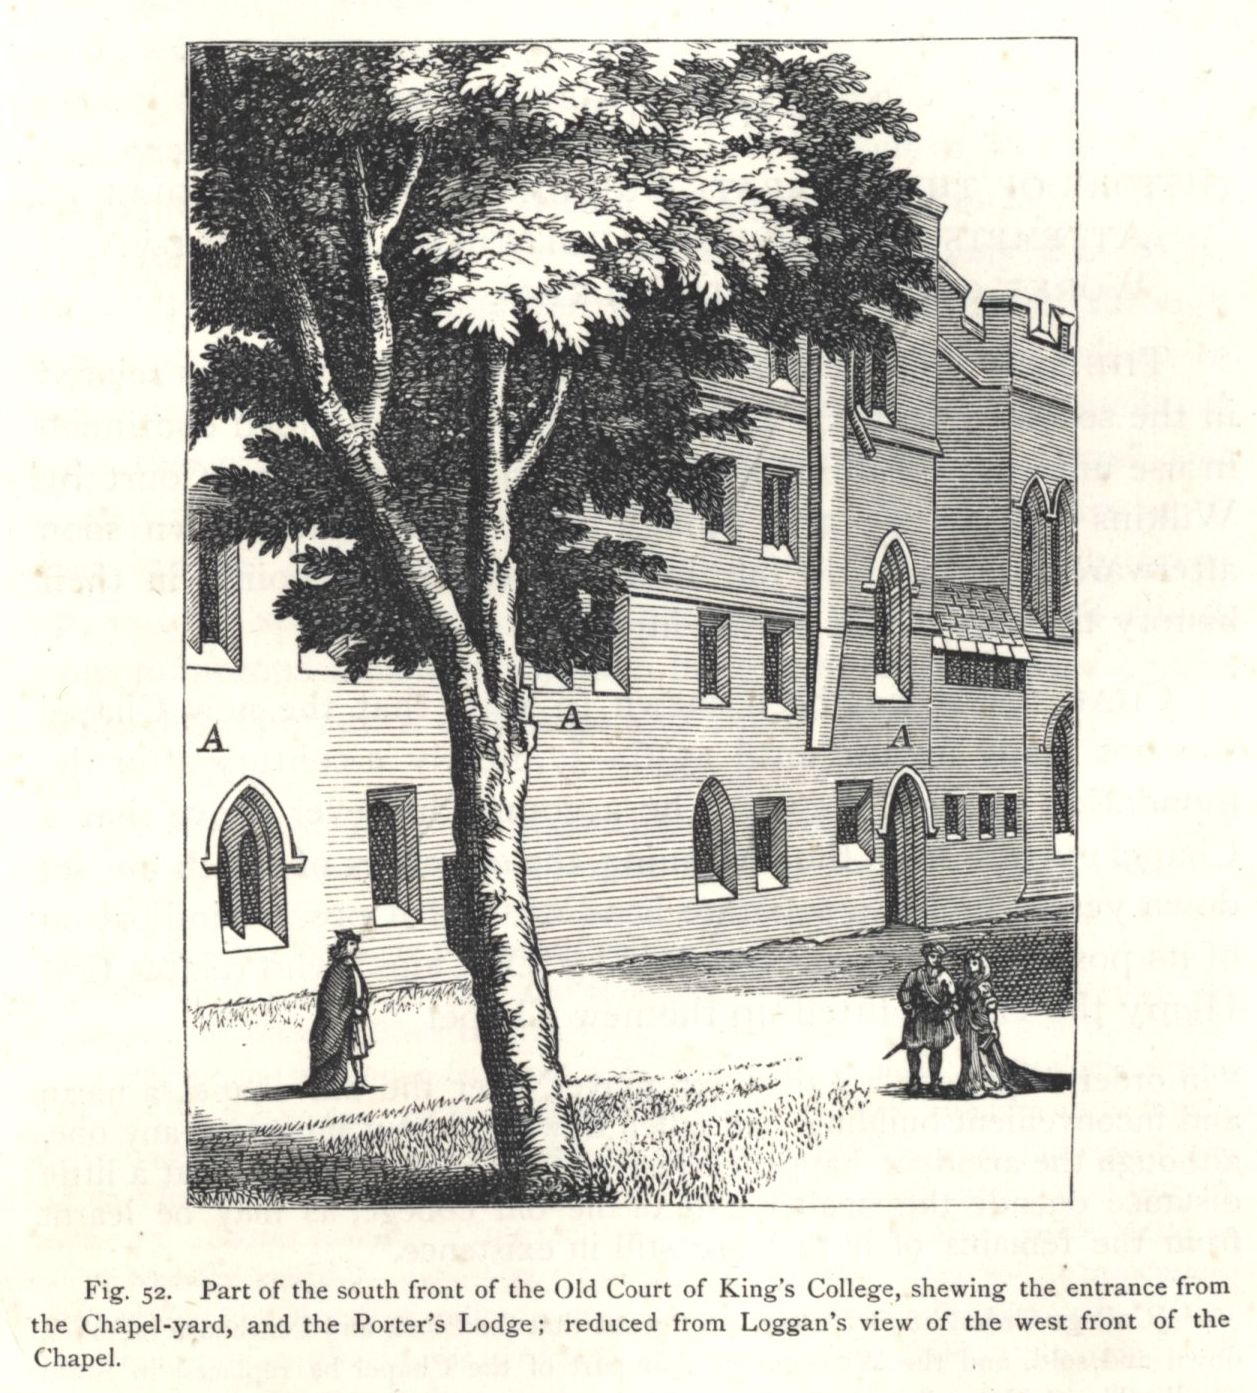 Part of the south front of the Old Court of King's College, showing the entrance from the Chapel-yard, and the Porter's Lodge, reduced from Loggan's view of the west front of the Chapel. [Willis and Clark, vol. 1, p. 533, fig. 52]